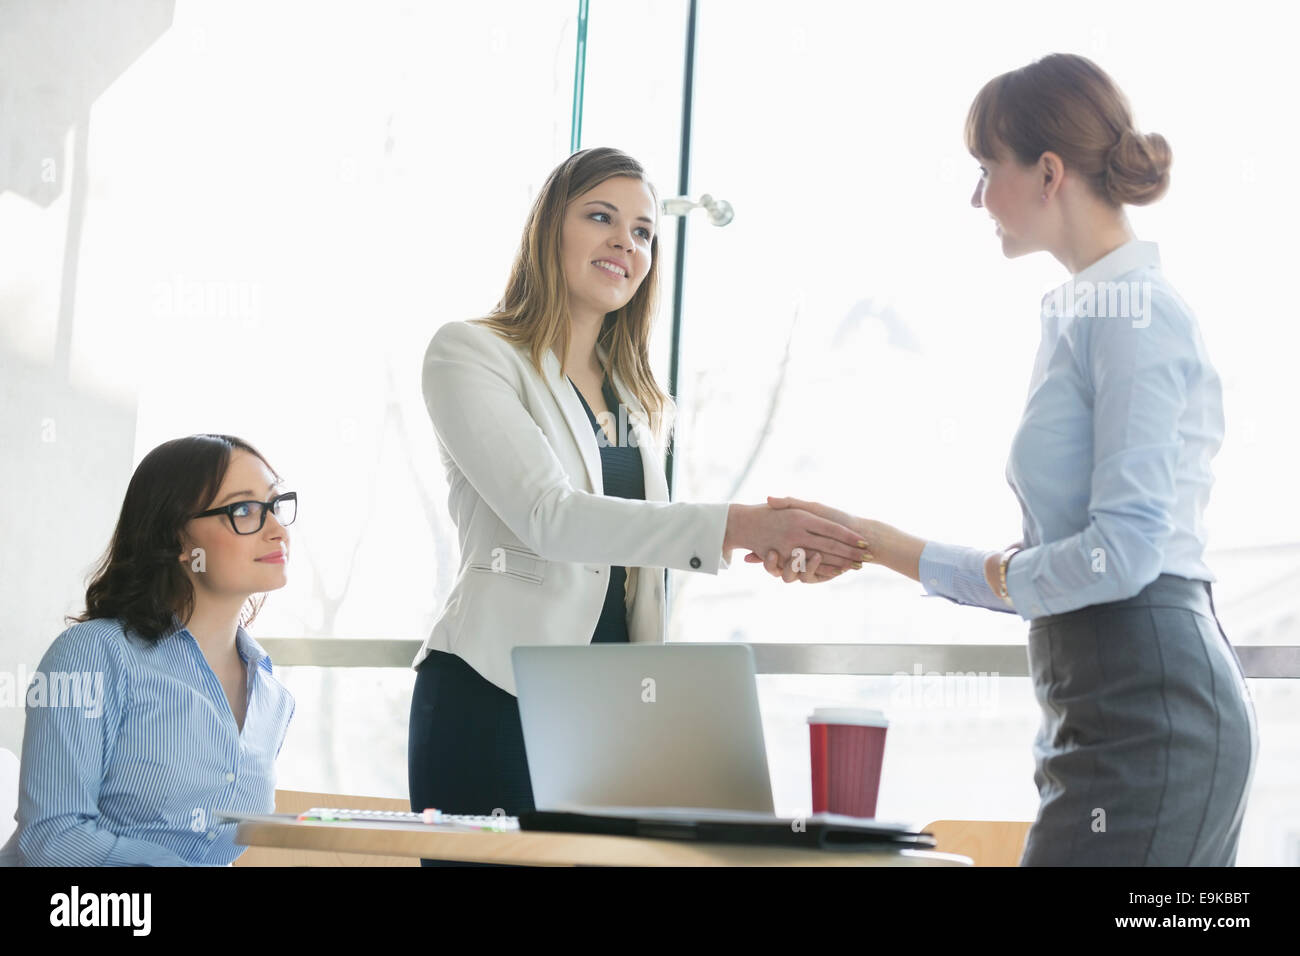 High angle view of businesswomen shaking hands at table in office - Stock Image